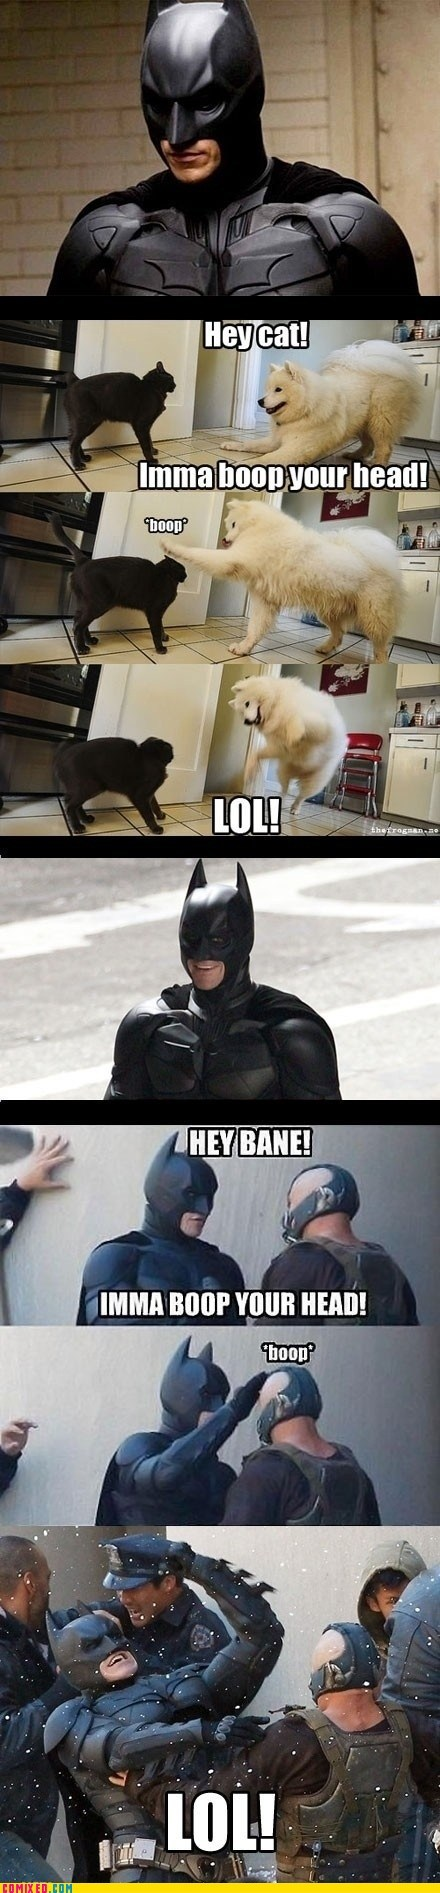 Where Batman Gets His Moves